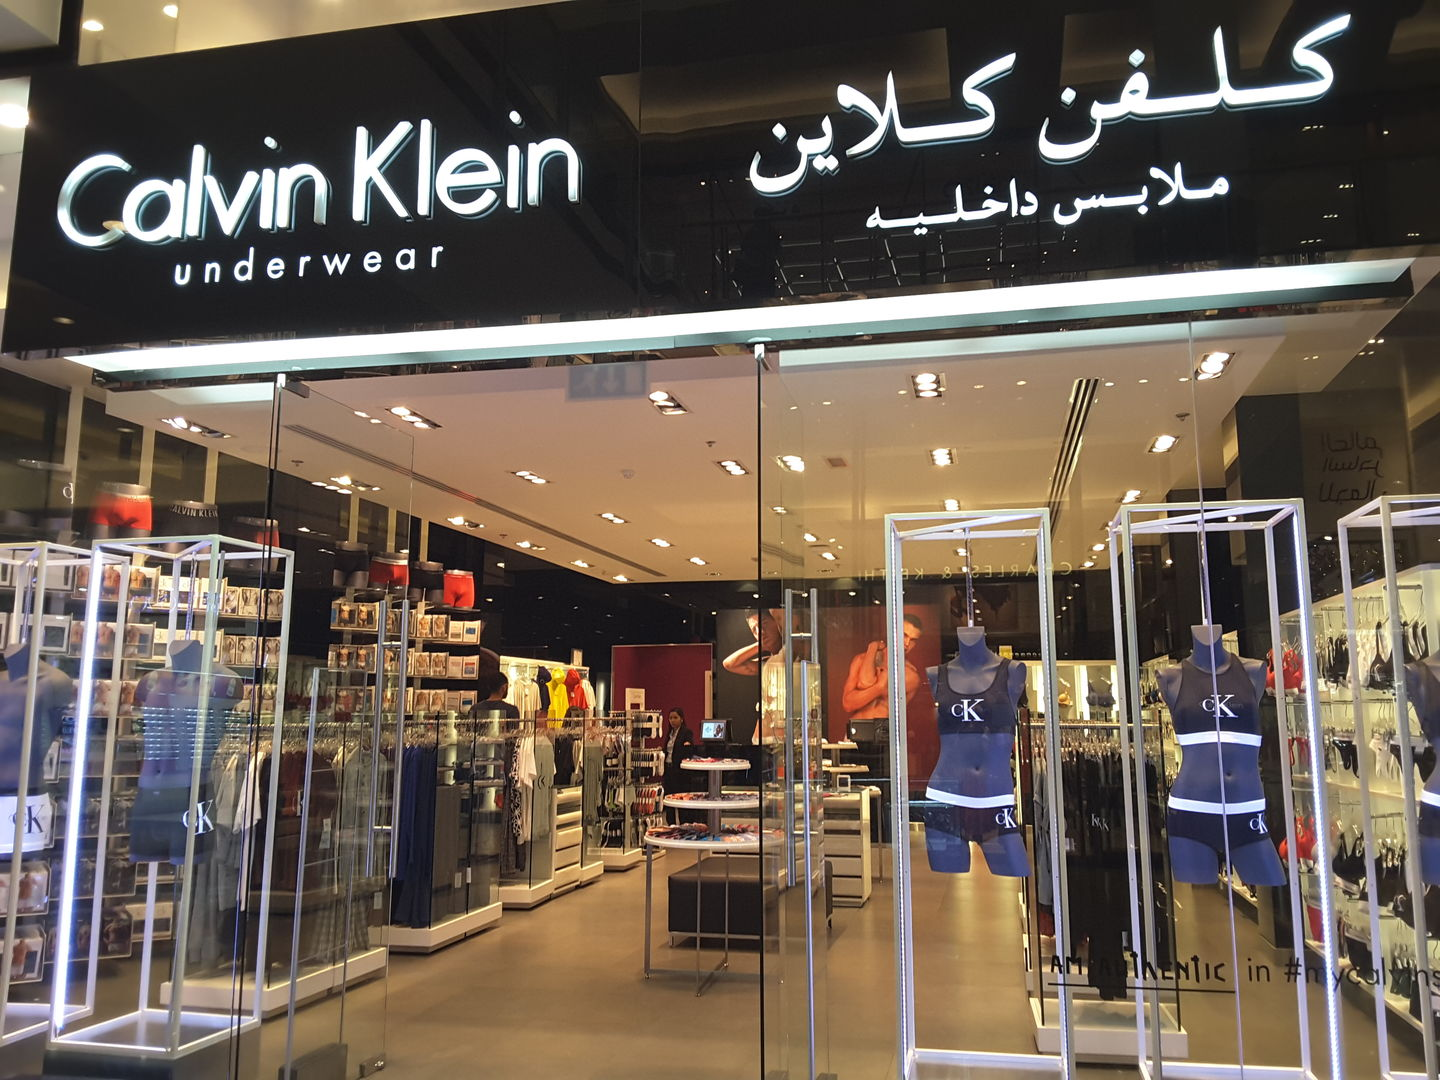 HiDubai-business-calvin-kelin-underwear-shopping-apparel-al-barsha-1-dubai-2